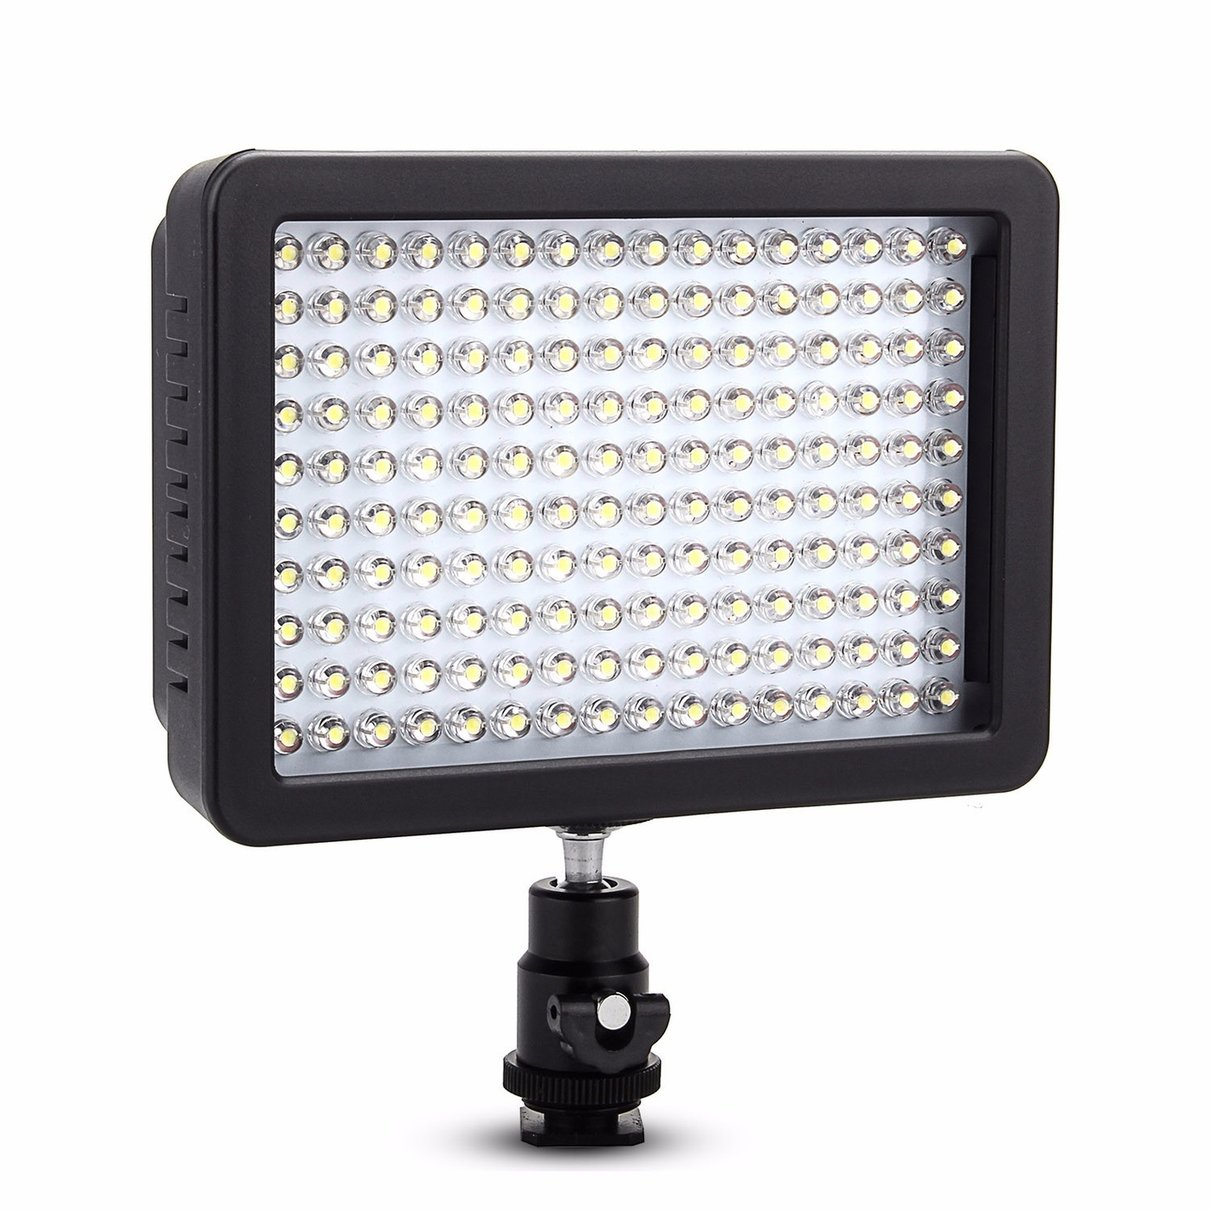 WanSen W160 LED Video Camera Light Lamp For Canon Nikon Pentax sony DV the same with